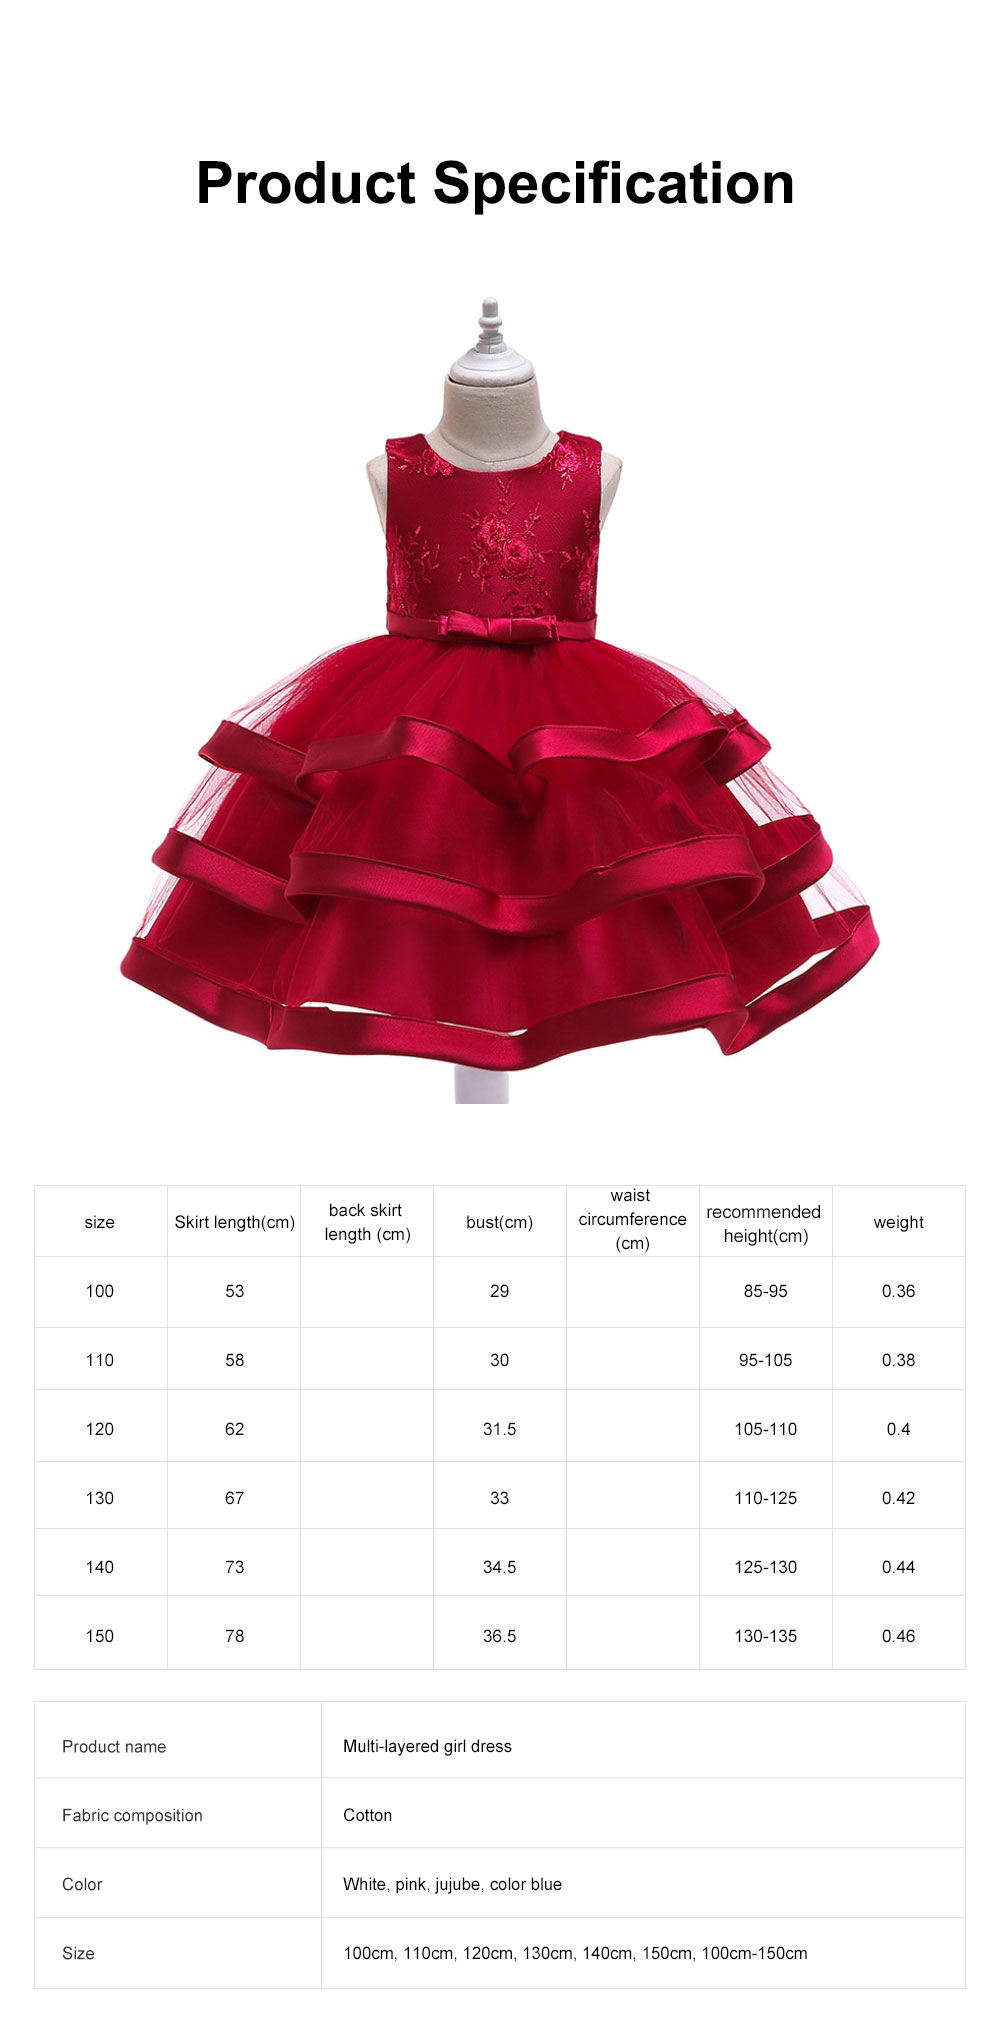 Female Flower Skirts Kids Girls Flower Wedding Dress, Multi-layer Mesh Gauze skirt, Multi-layered Show Dress Party Suit 6